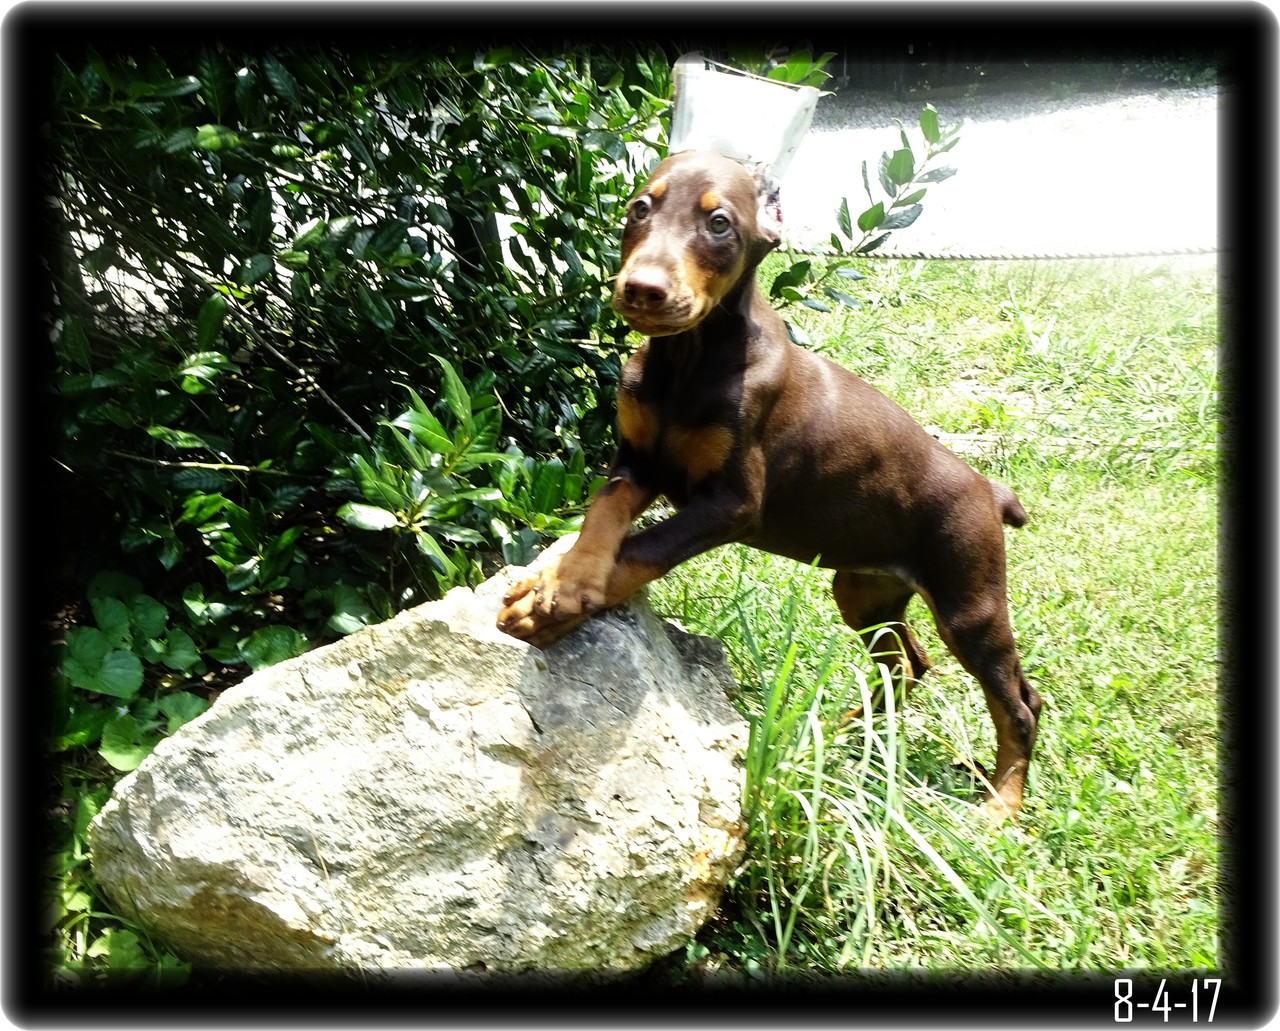 Heidi in a Pretty Doberman Pose for Proof she is a Show dog at heart.